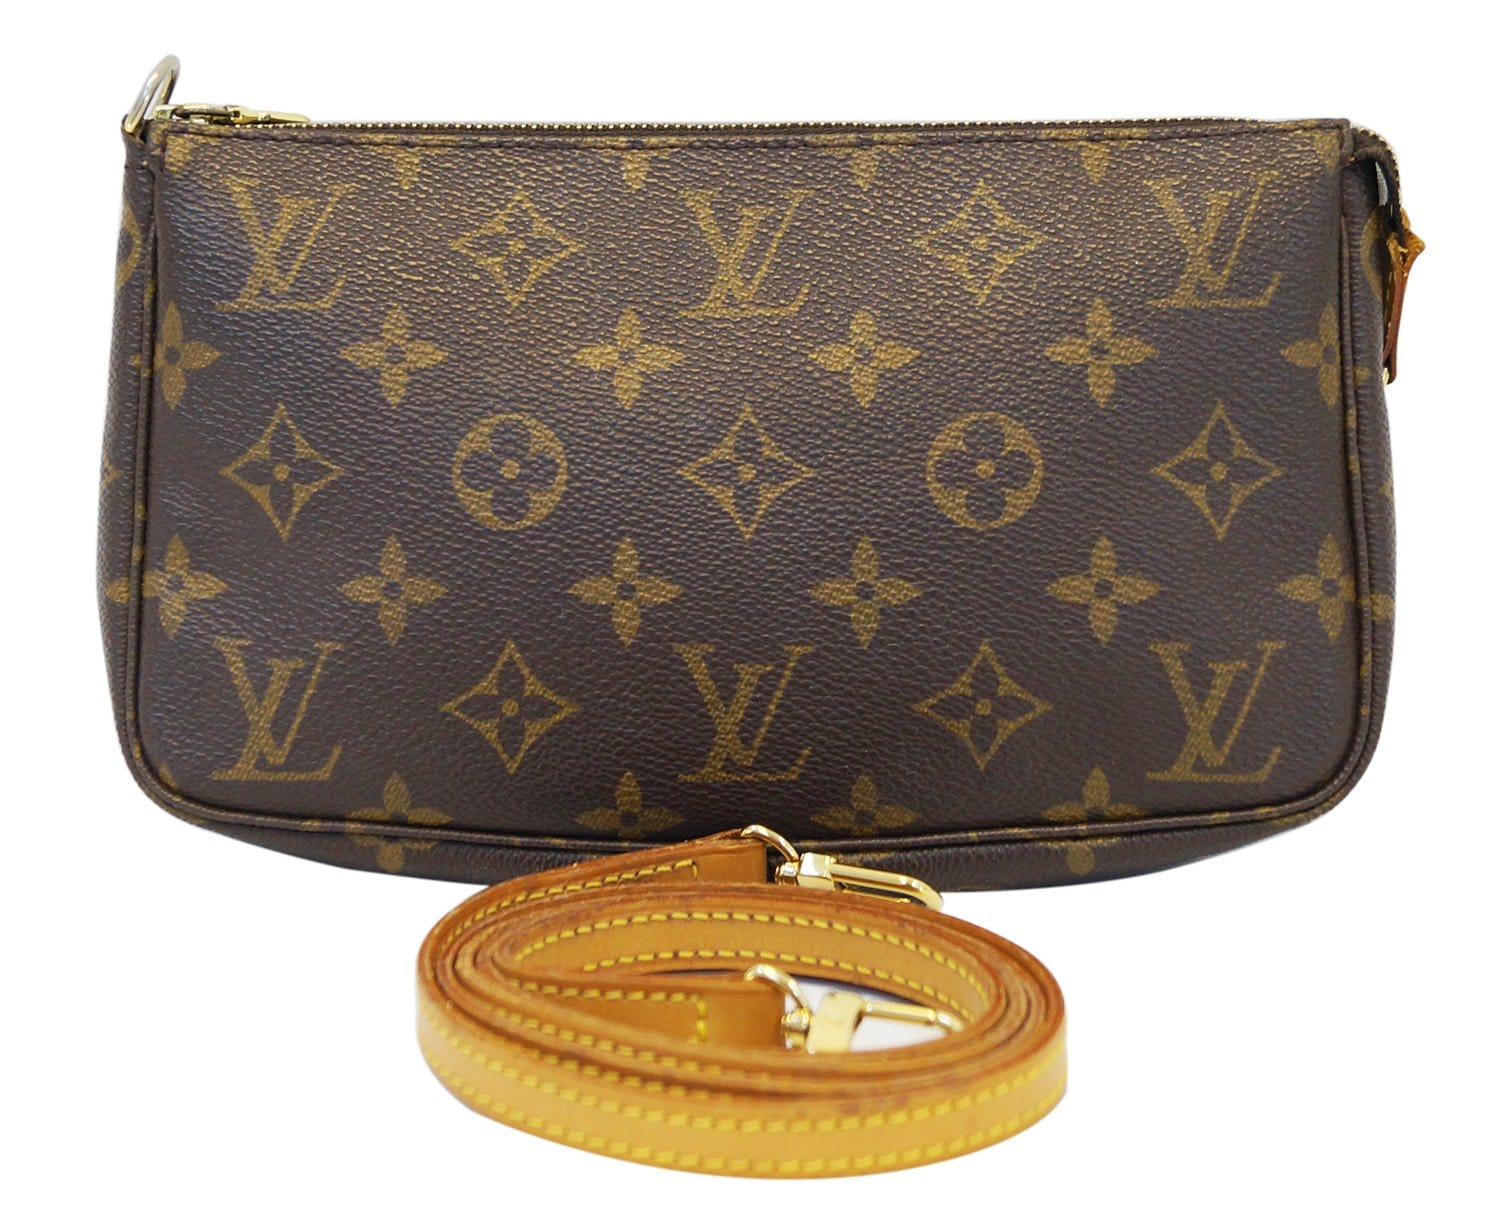 729701c8cbc3 Authentic LOUIS VUITTON Monogram Pochette Accessoires Crossbody Bag E3